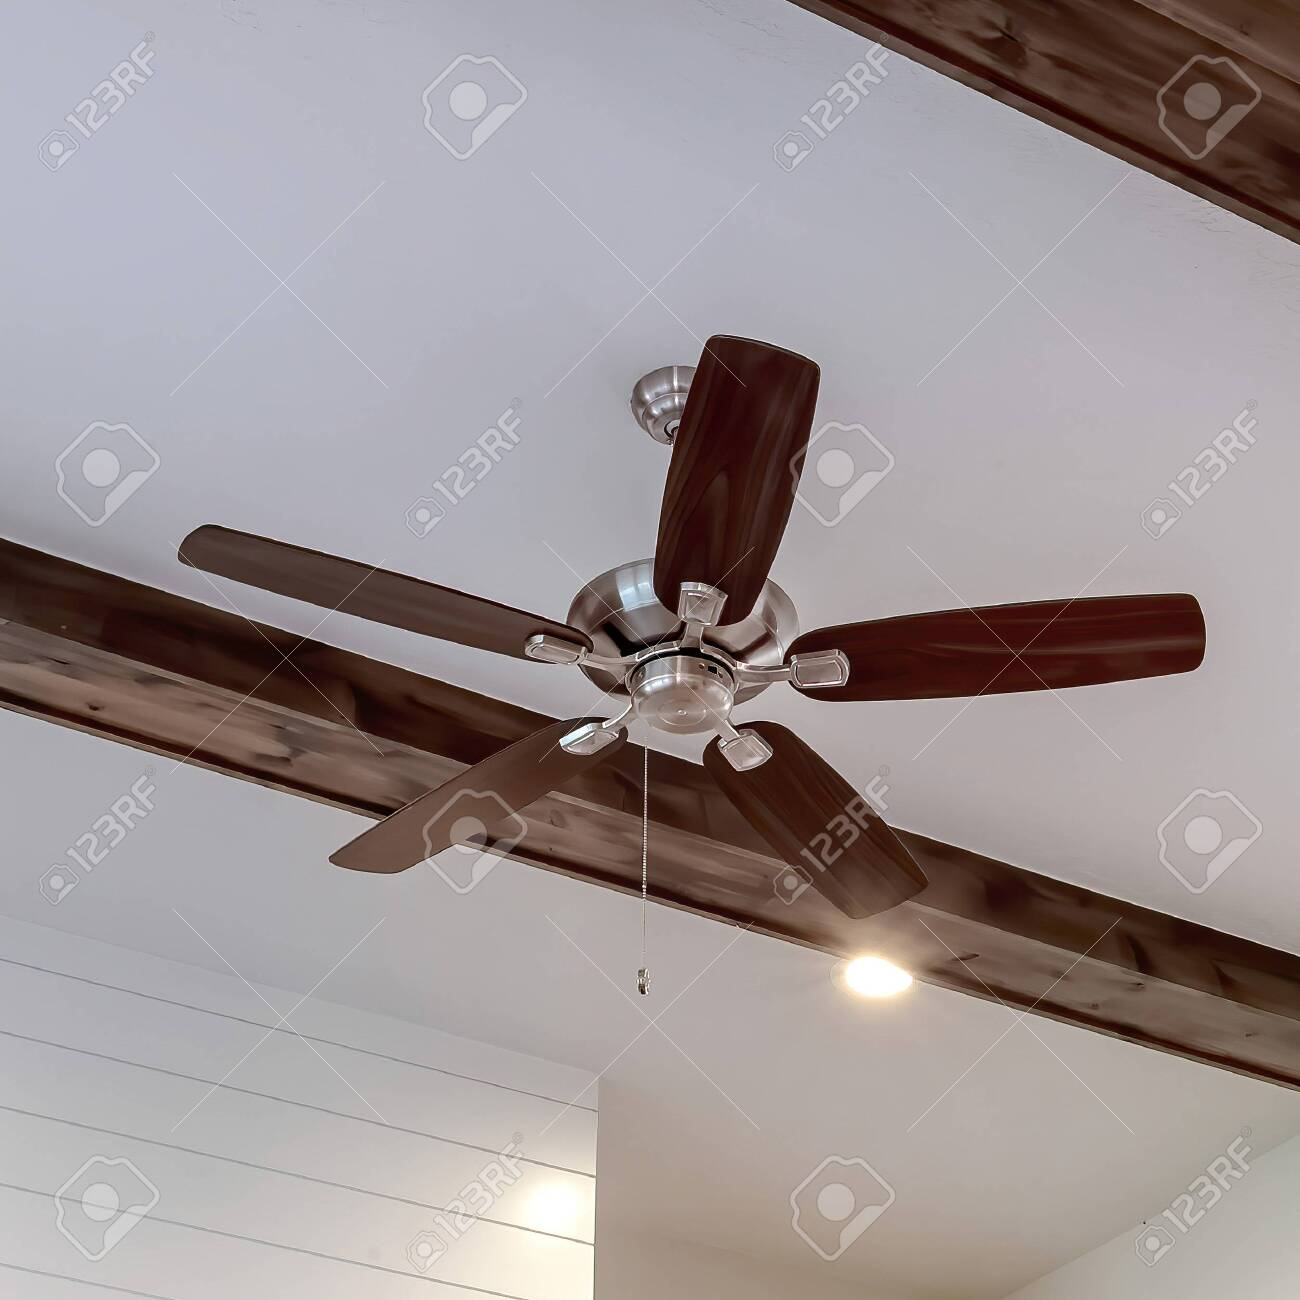 Square Wood Beams And Recessed Bulbs With Ceiling Fan And Lights Stock Photo Picture And Royalty Free Image Image 149181971